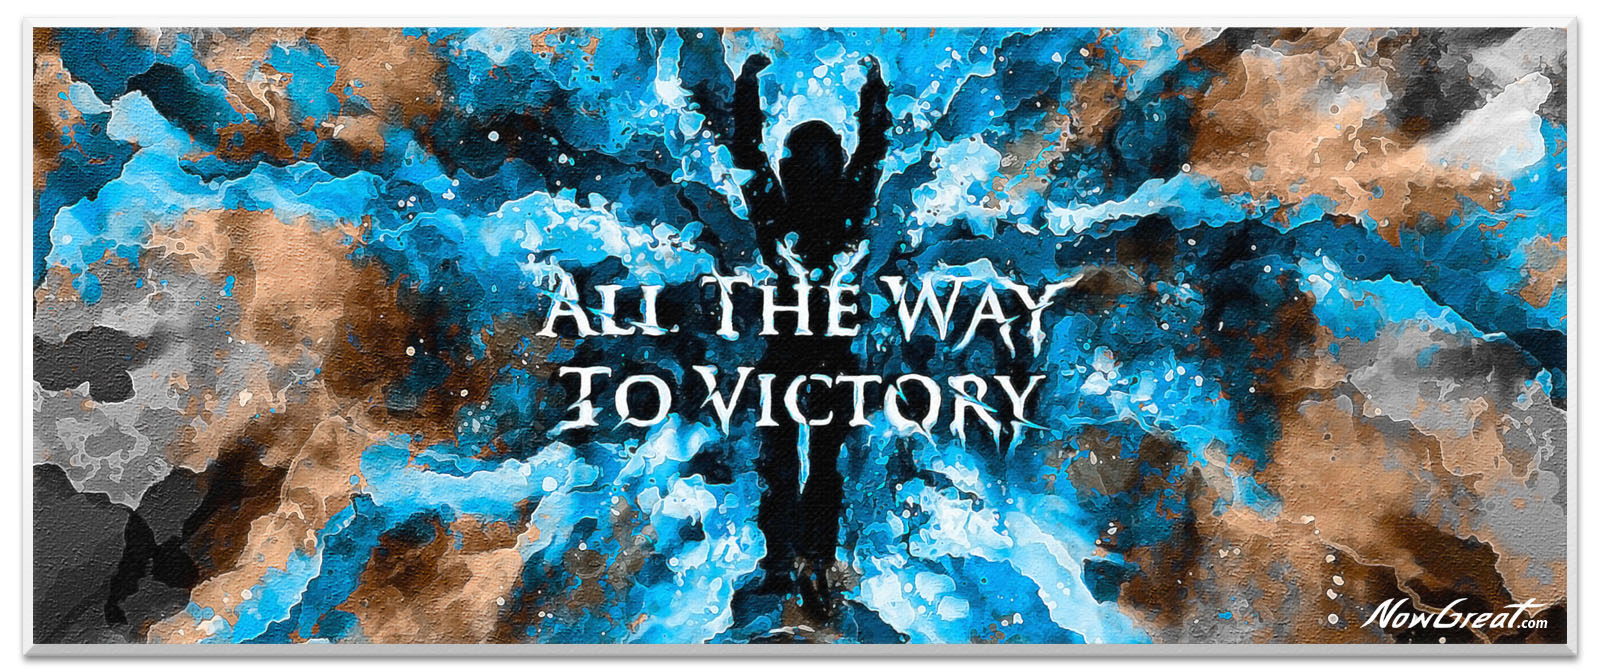 ng-now-great-slider-artwork-art-design-quote-all-the-way-to-victory1